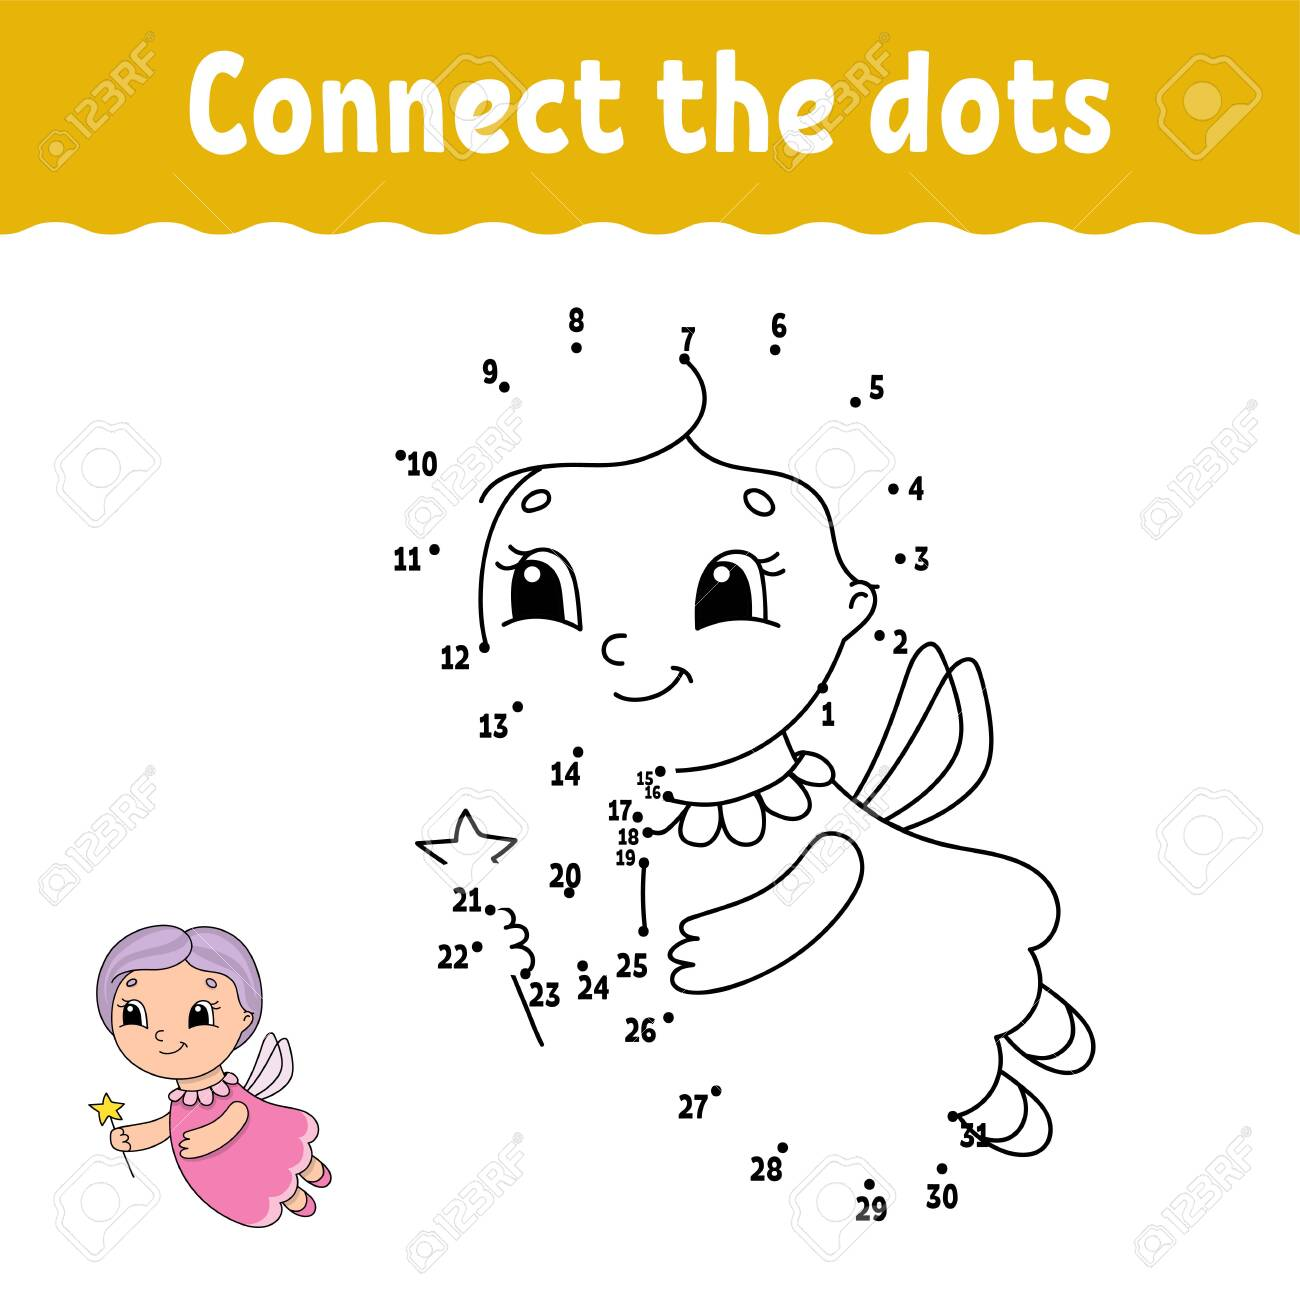 Dot To Dot Draw A Line Handwriting Practice Learning Numbers Royalty Free Cliparts Vectors And Stock Illustration Image 124141016